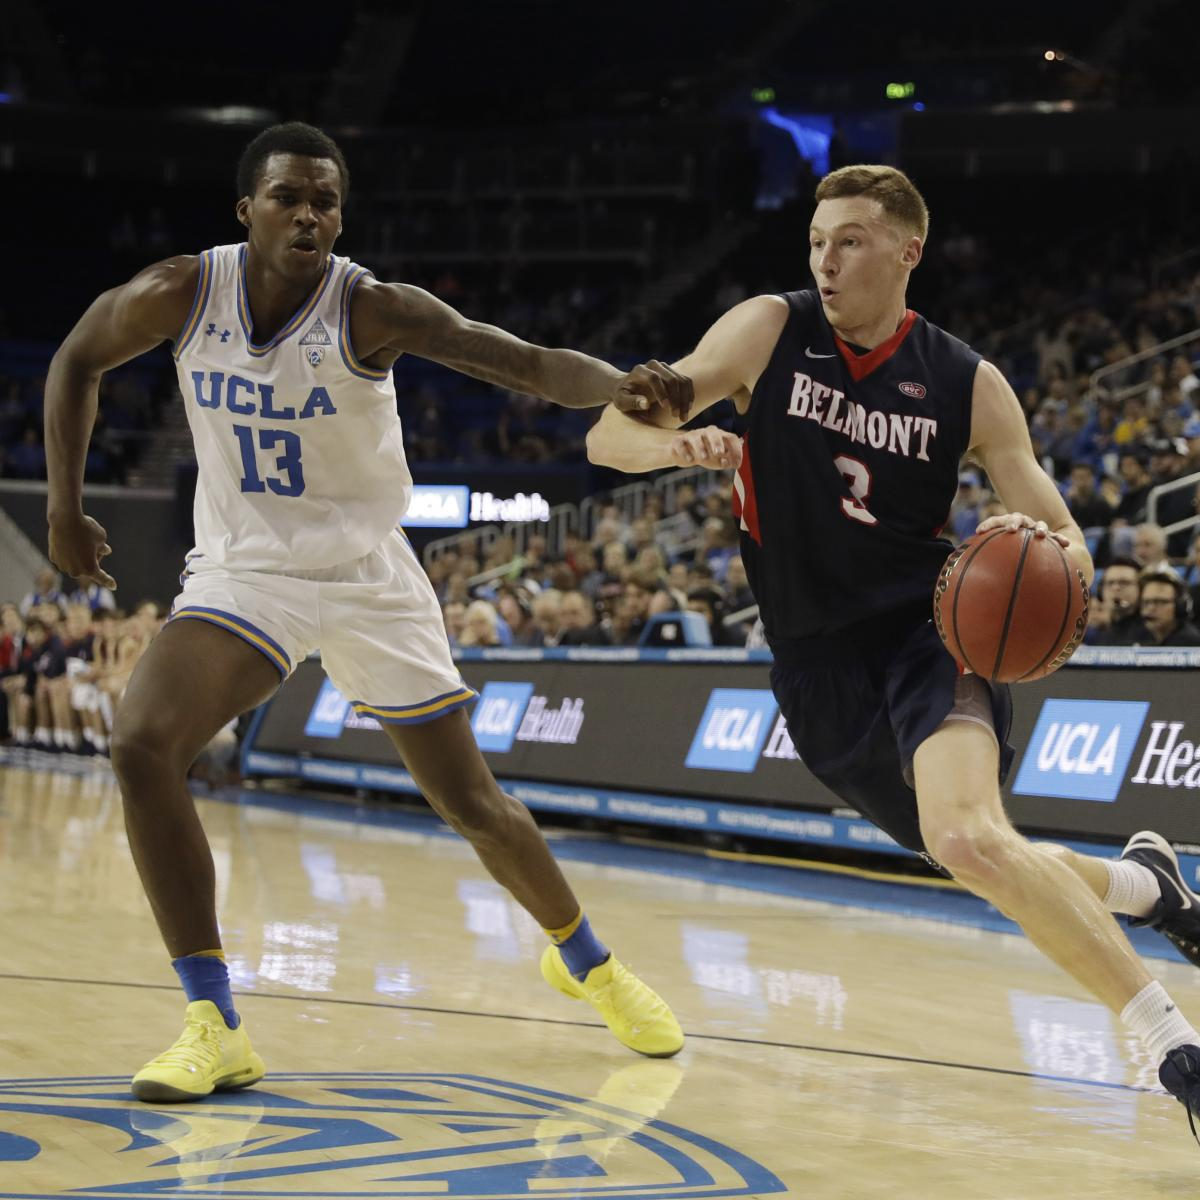 NIT 2019: Updated Format, Latest Bracketology Predictions